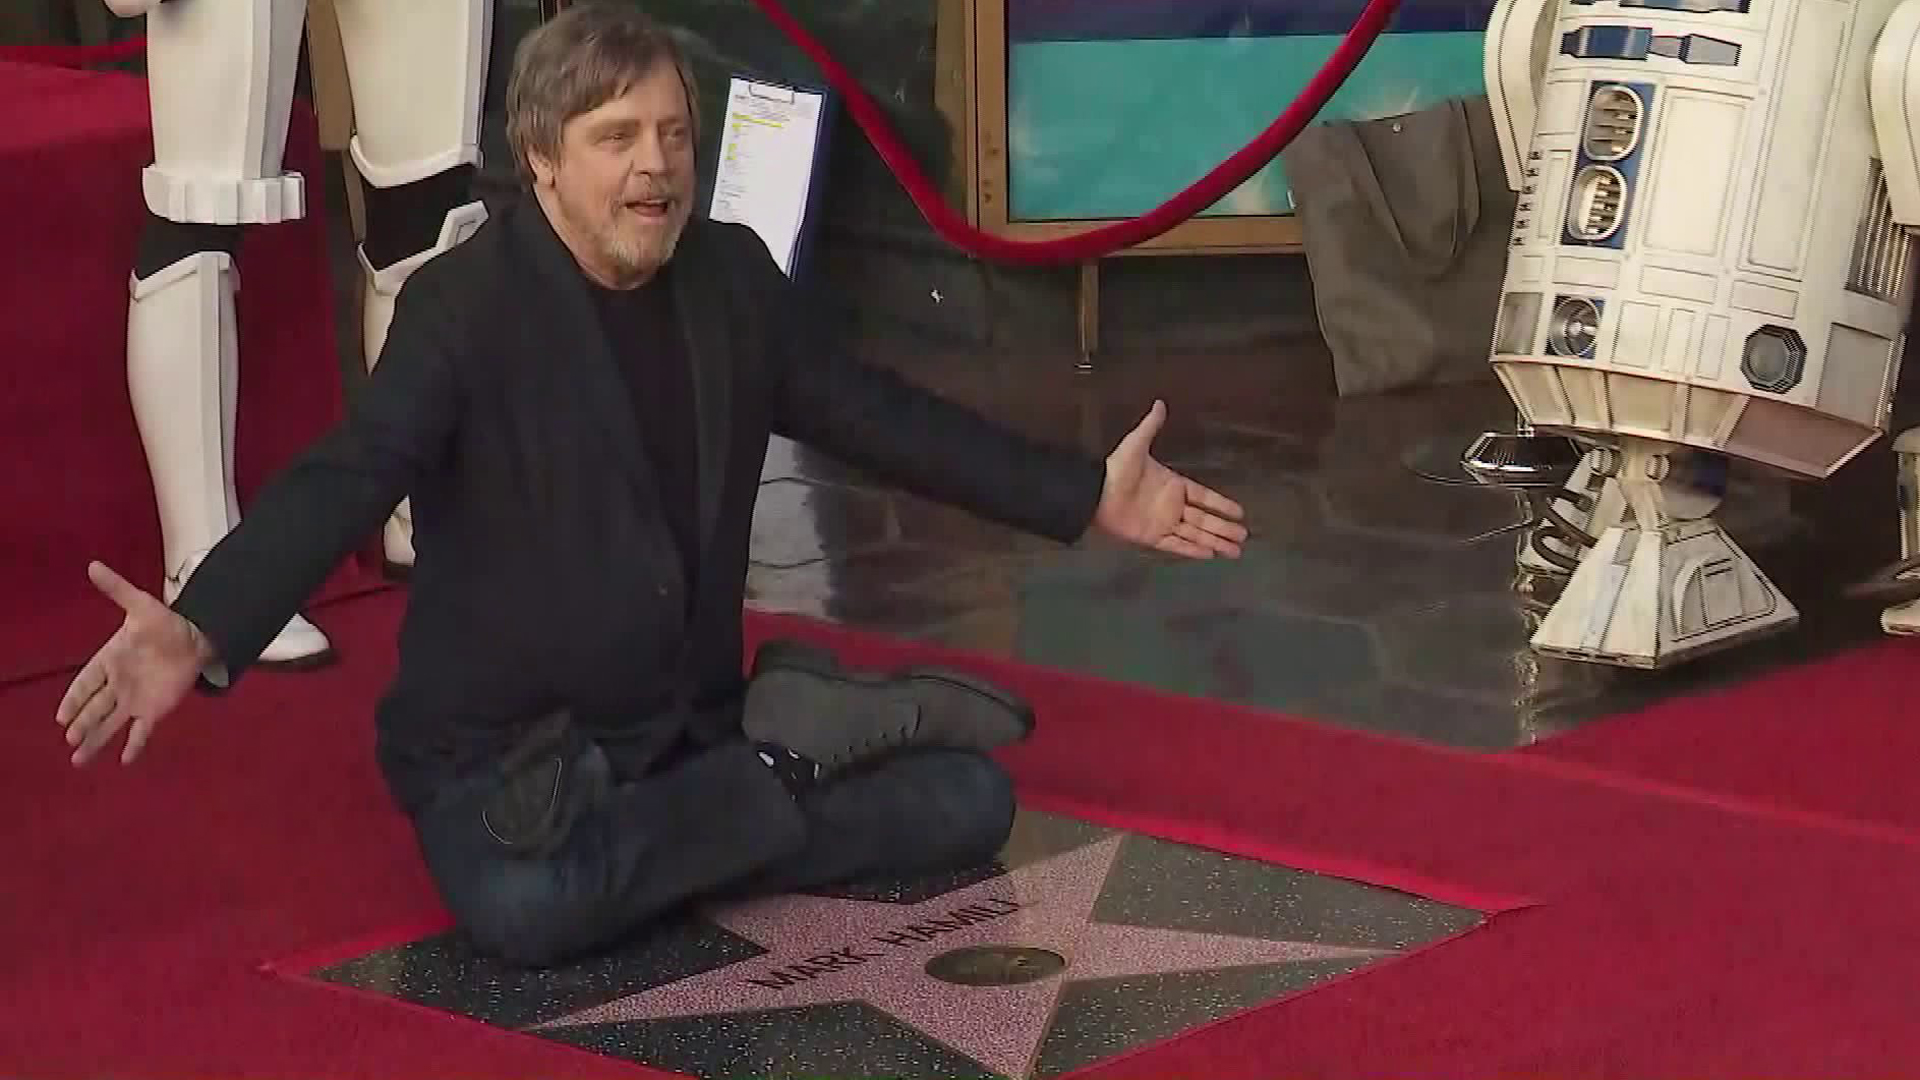 Mark Hamill received his star on the Hollywood Walk of Fame on March 8, 2018. (Credit: KTLA)